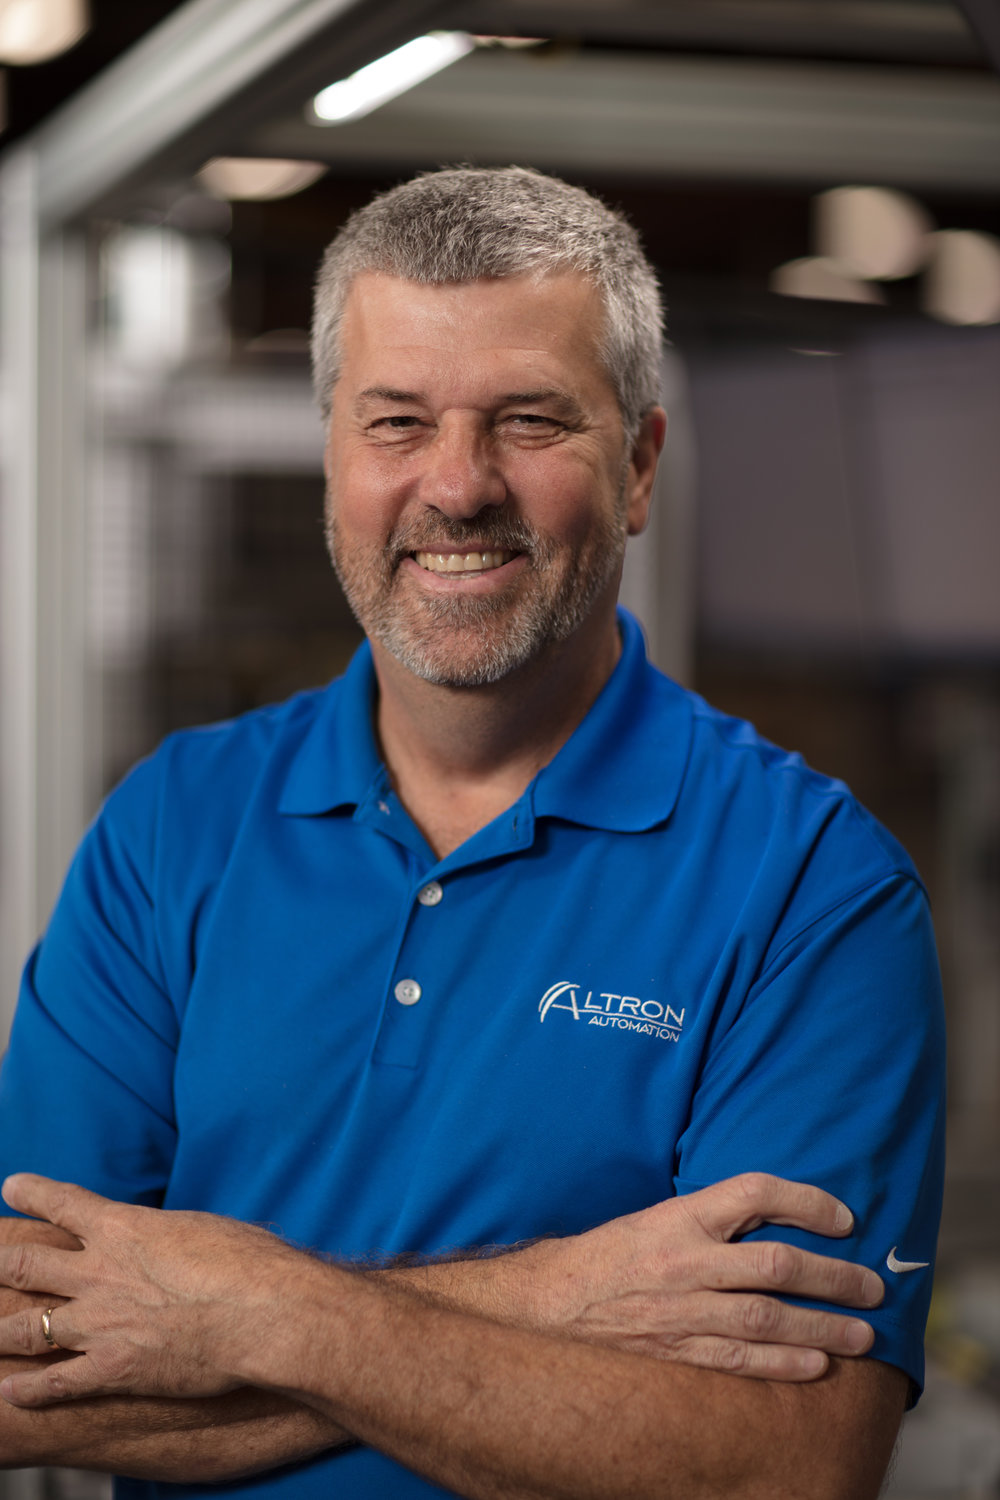 Arnold 'Spike' LaCombe - Vice President   Spike has been in the design and build industry for 35 years and the co-founder and Vice President of Altron Automation for 29 years. A controls engineer by education, Spike knows the challenges that our employees and customers face. As a result, he has many unique ideas about how we can take the services we offer to the next level. His commitment to excellence is apparent in all of the ways in which he supports the organization.